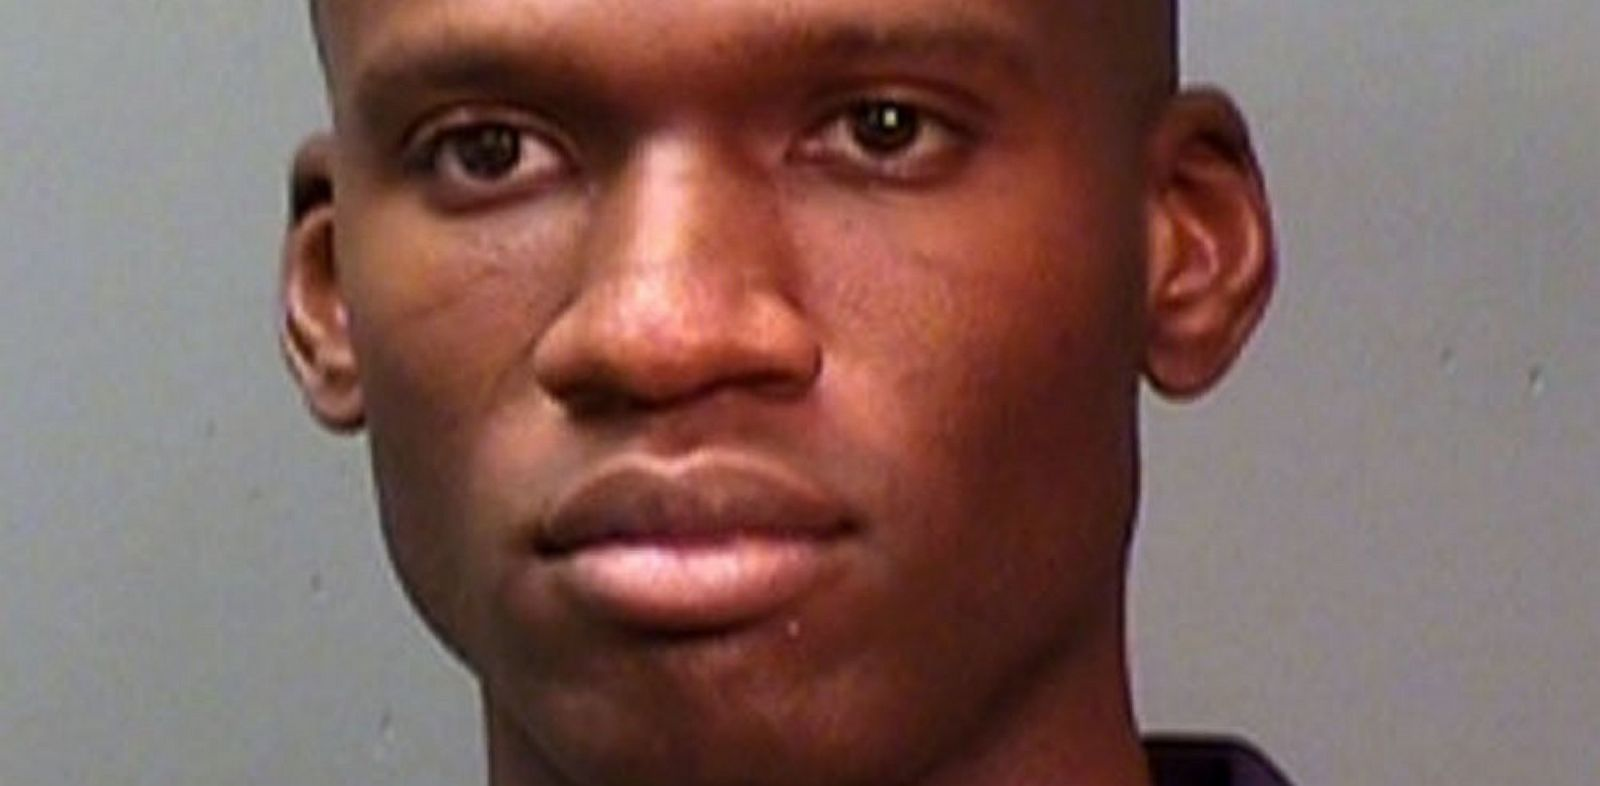 PHOTO: Aaron Alexis is suspected to be the shooter at the Washington D,C. Navy Yard Sept. 16, 2013.